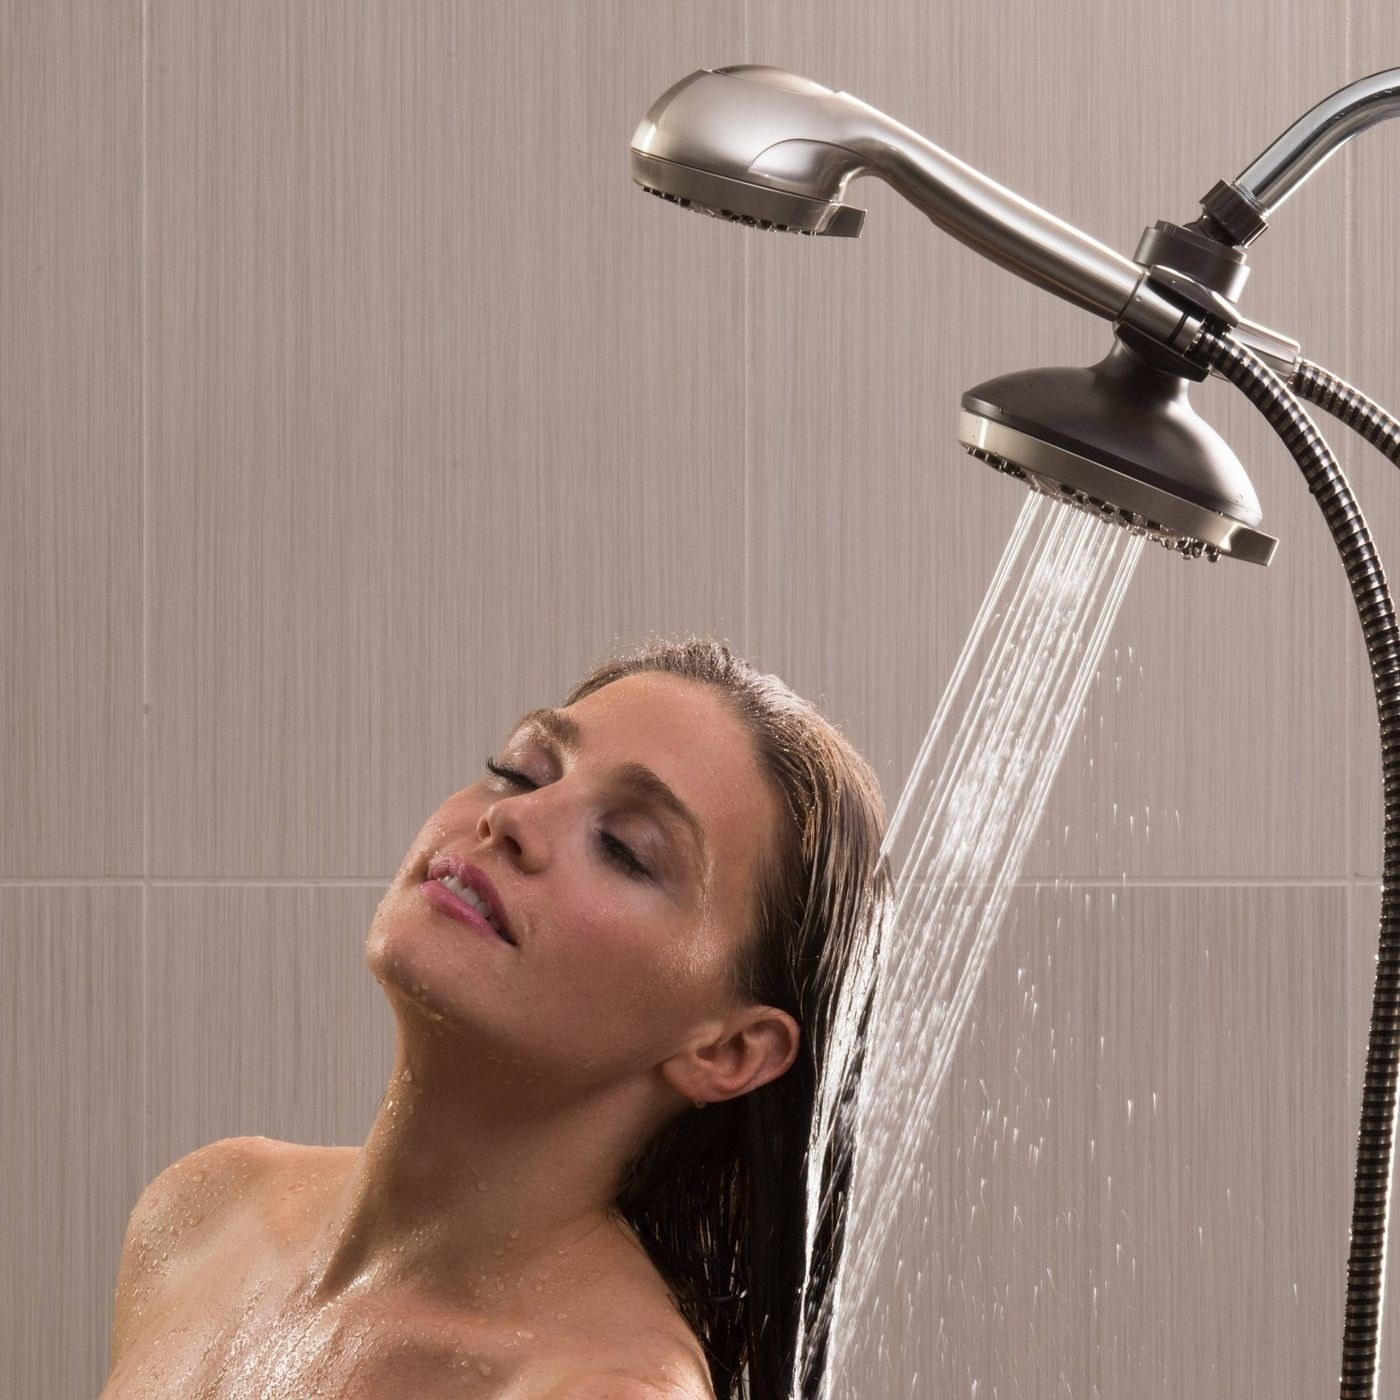 A person showering with the rainfall head on